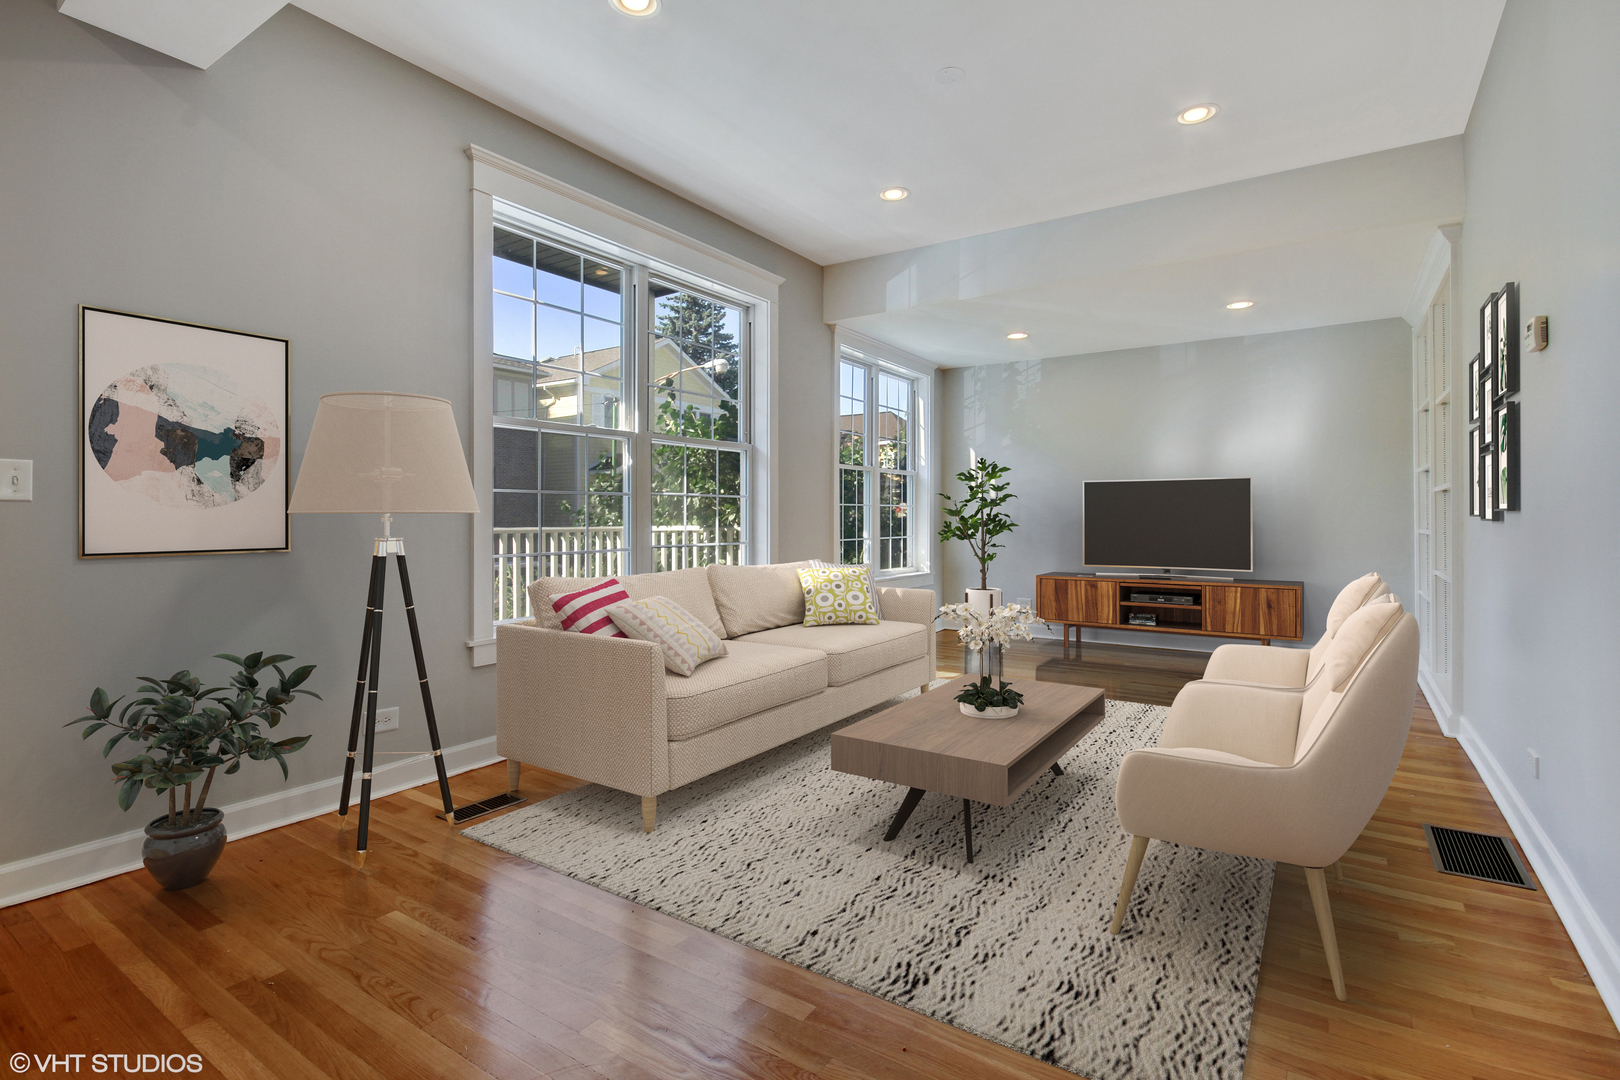 1220 Lill Avenue, Chicago, Illinois 60614, 3 Bedrooms Bedrooms, ,3 BathroomsBathrooms,Residential,For Sale,Lill,MRD11121123